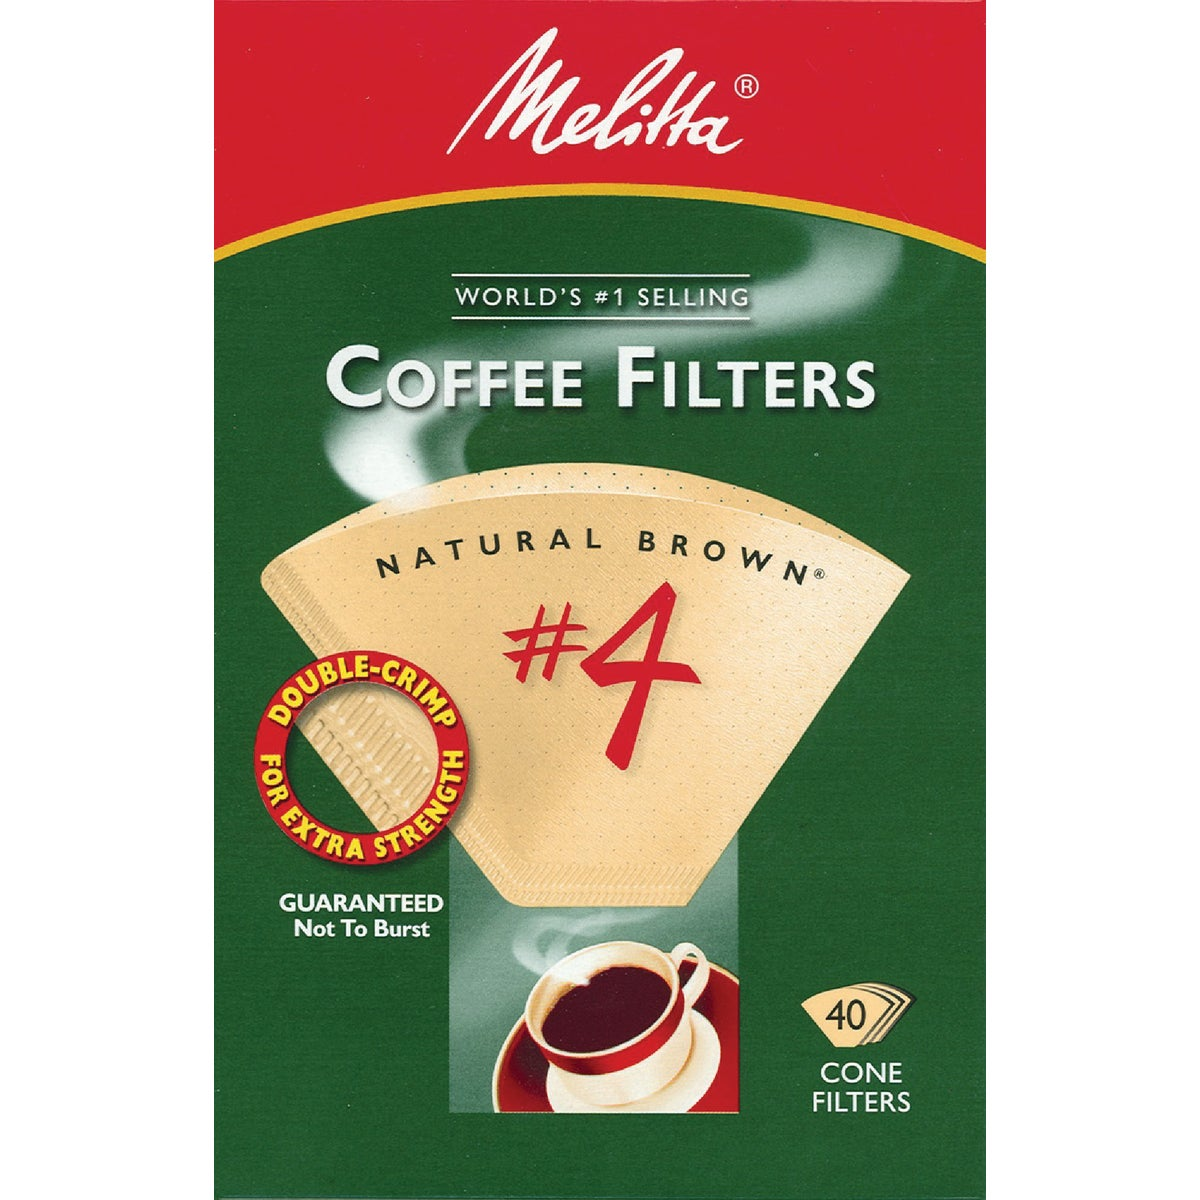 BROWN #4 COFFEE FILTER - 624412 by Melitta U S A Inc